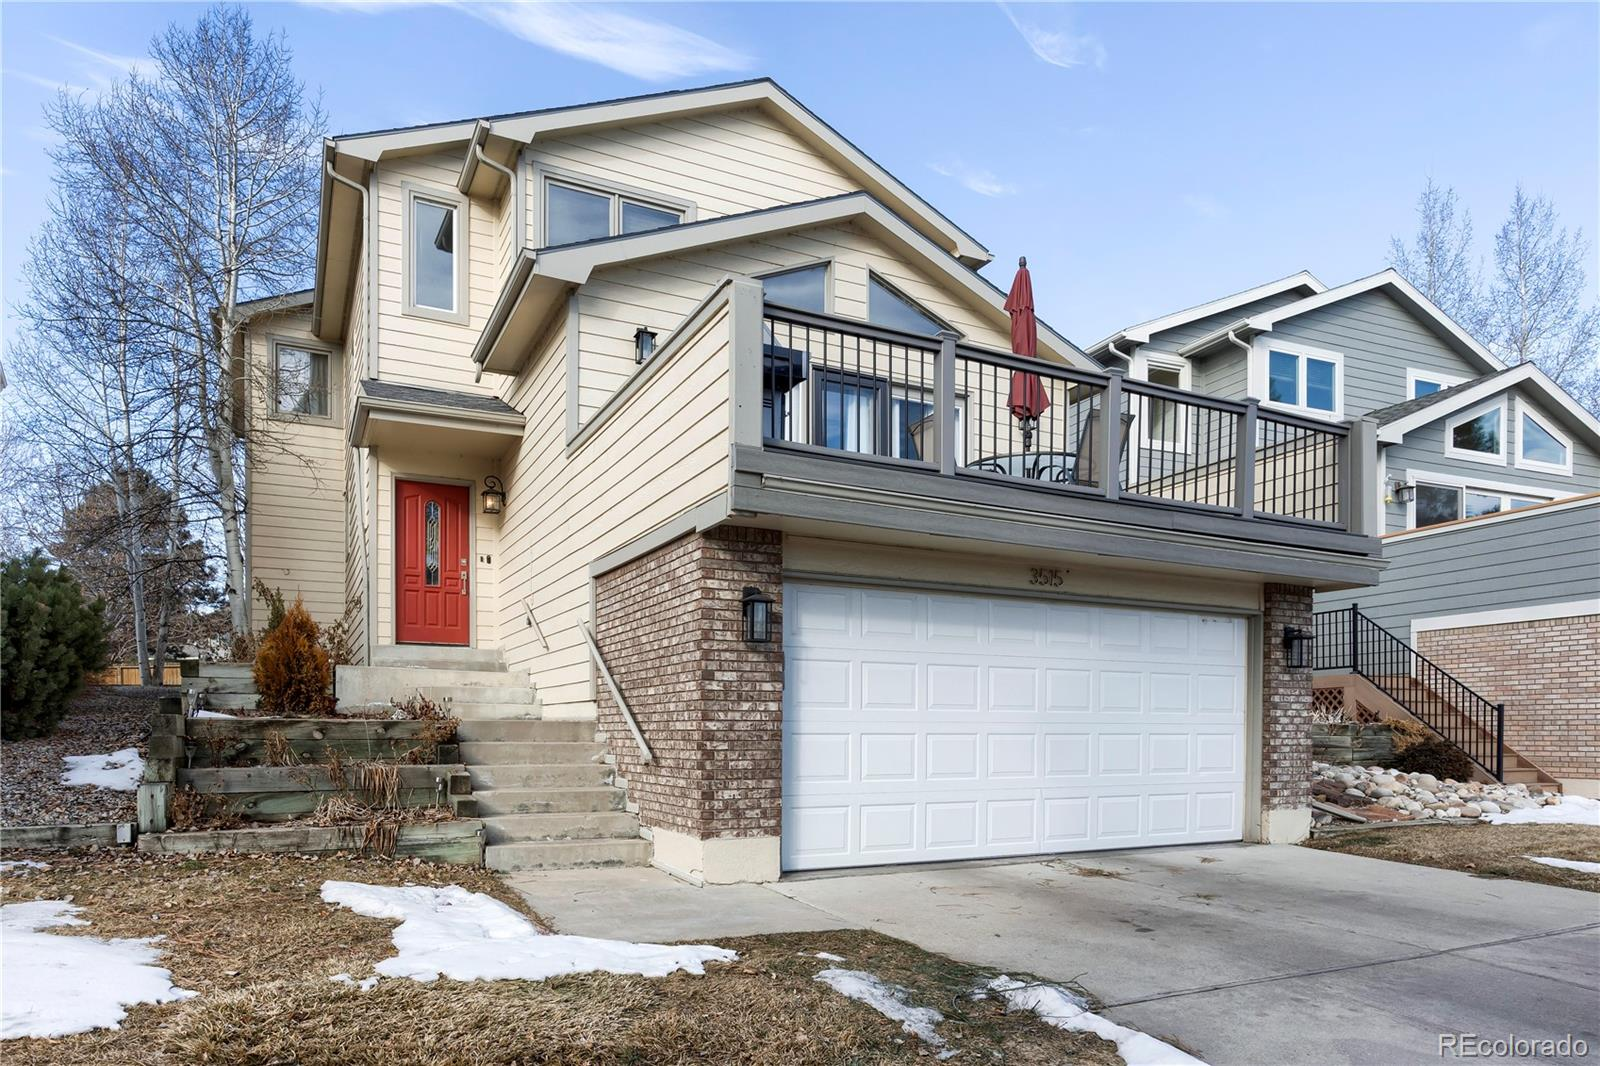 MLS# 7703122 - 1 - 3515 Terry Point Drive, Fort Collins, CO 80524